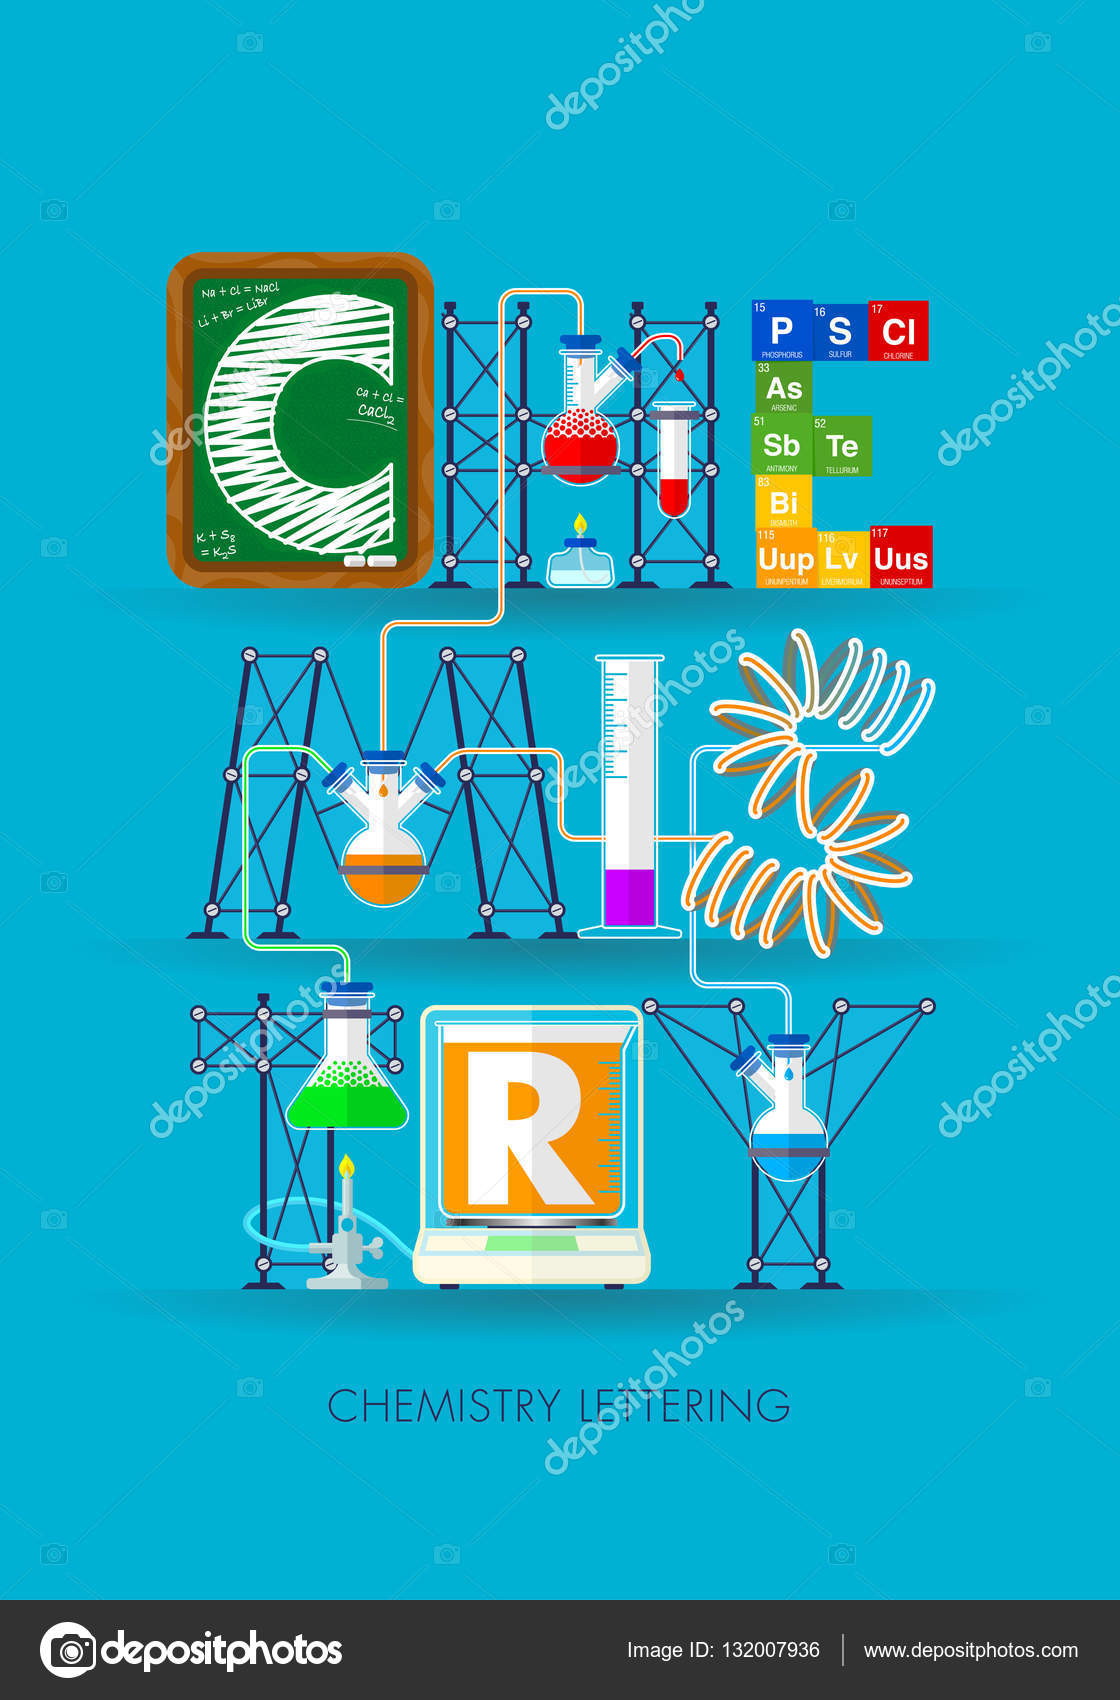 Chemistry lettering formed by an experiment with test tubes symbols chemistry lettering formed by an experiment with test tubes symbols of the elements of the periodic table a blackboard and a scale in blue background urtaz Image collections